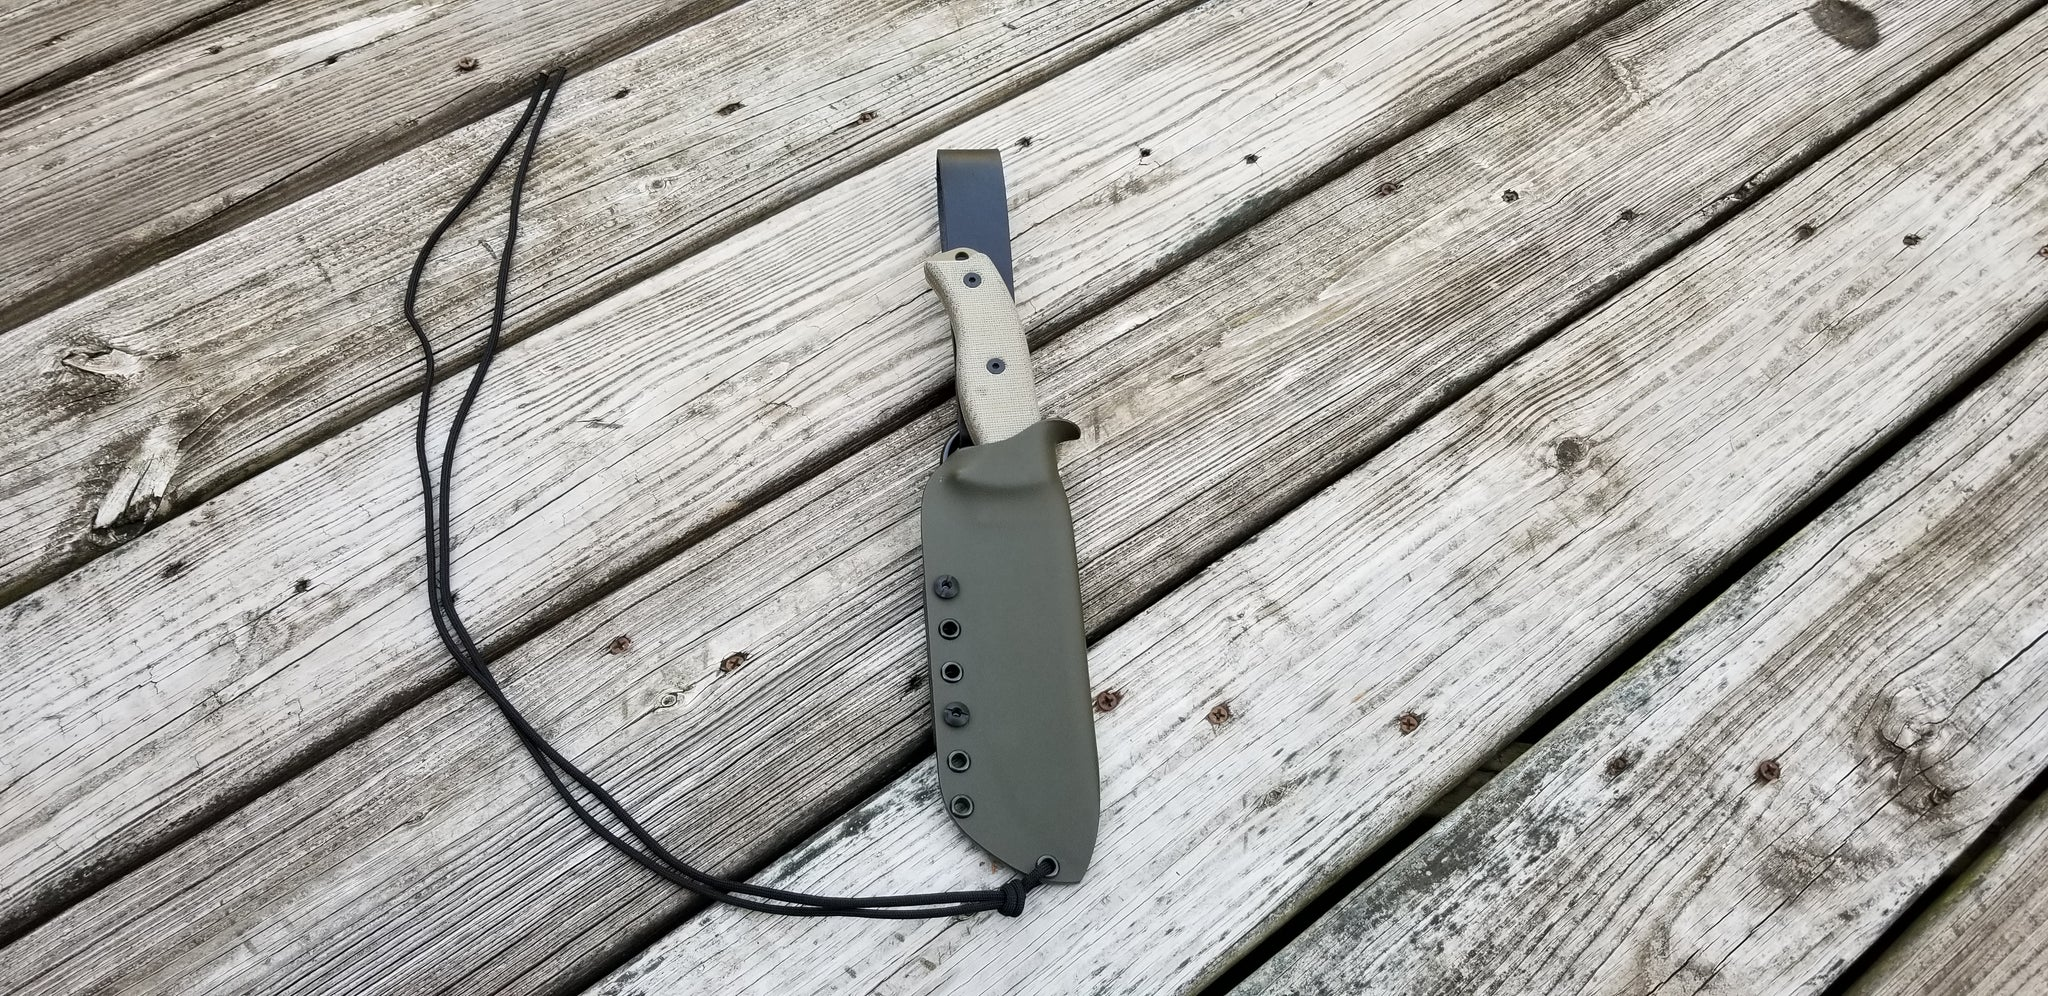 ESEE-6 Custom Kydex Sheath & Leather Loop Kydex Dangler and Paracord Lanyard